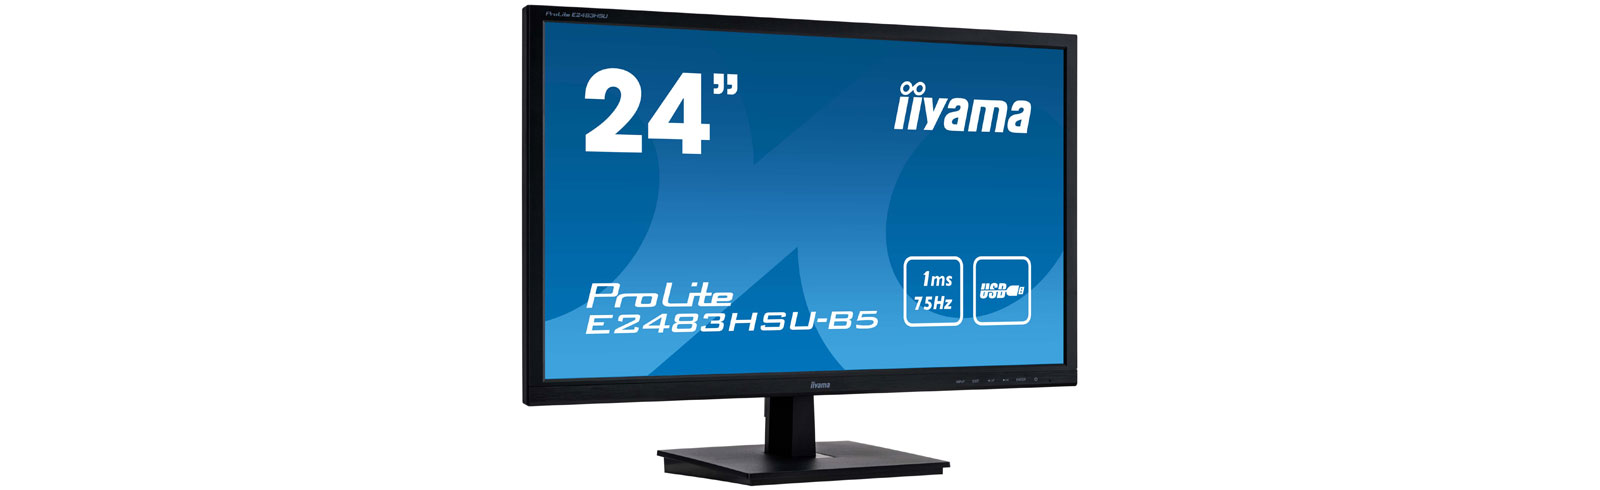 "iiyama ProLite E2483HSU-B5 and B2483HSU-B5 go official with 24"" TN 75Hz displays"